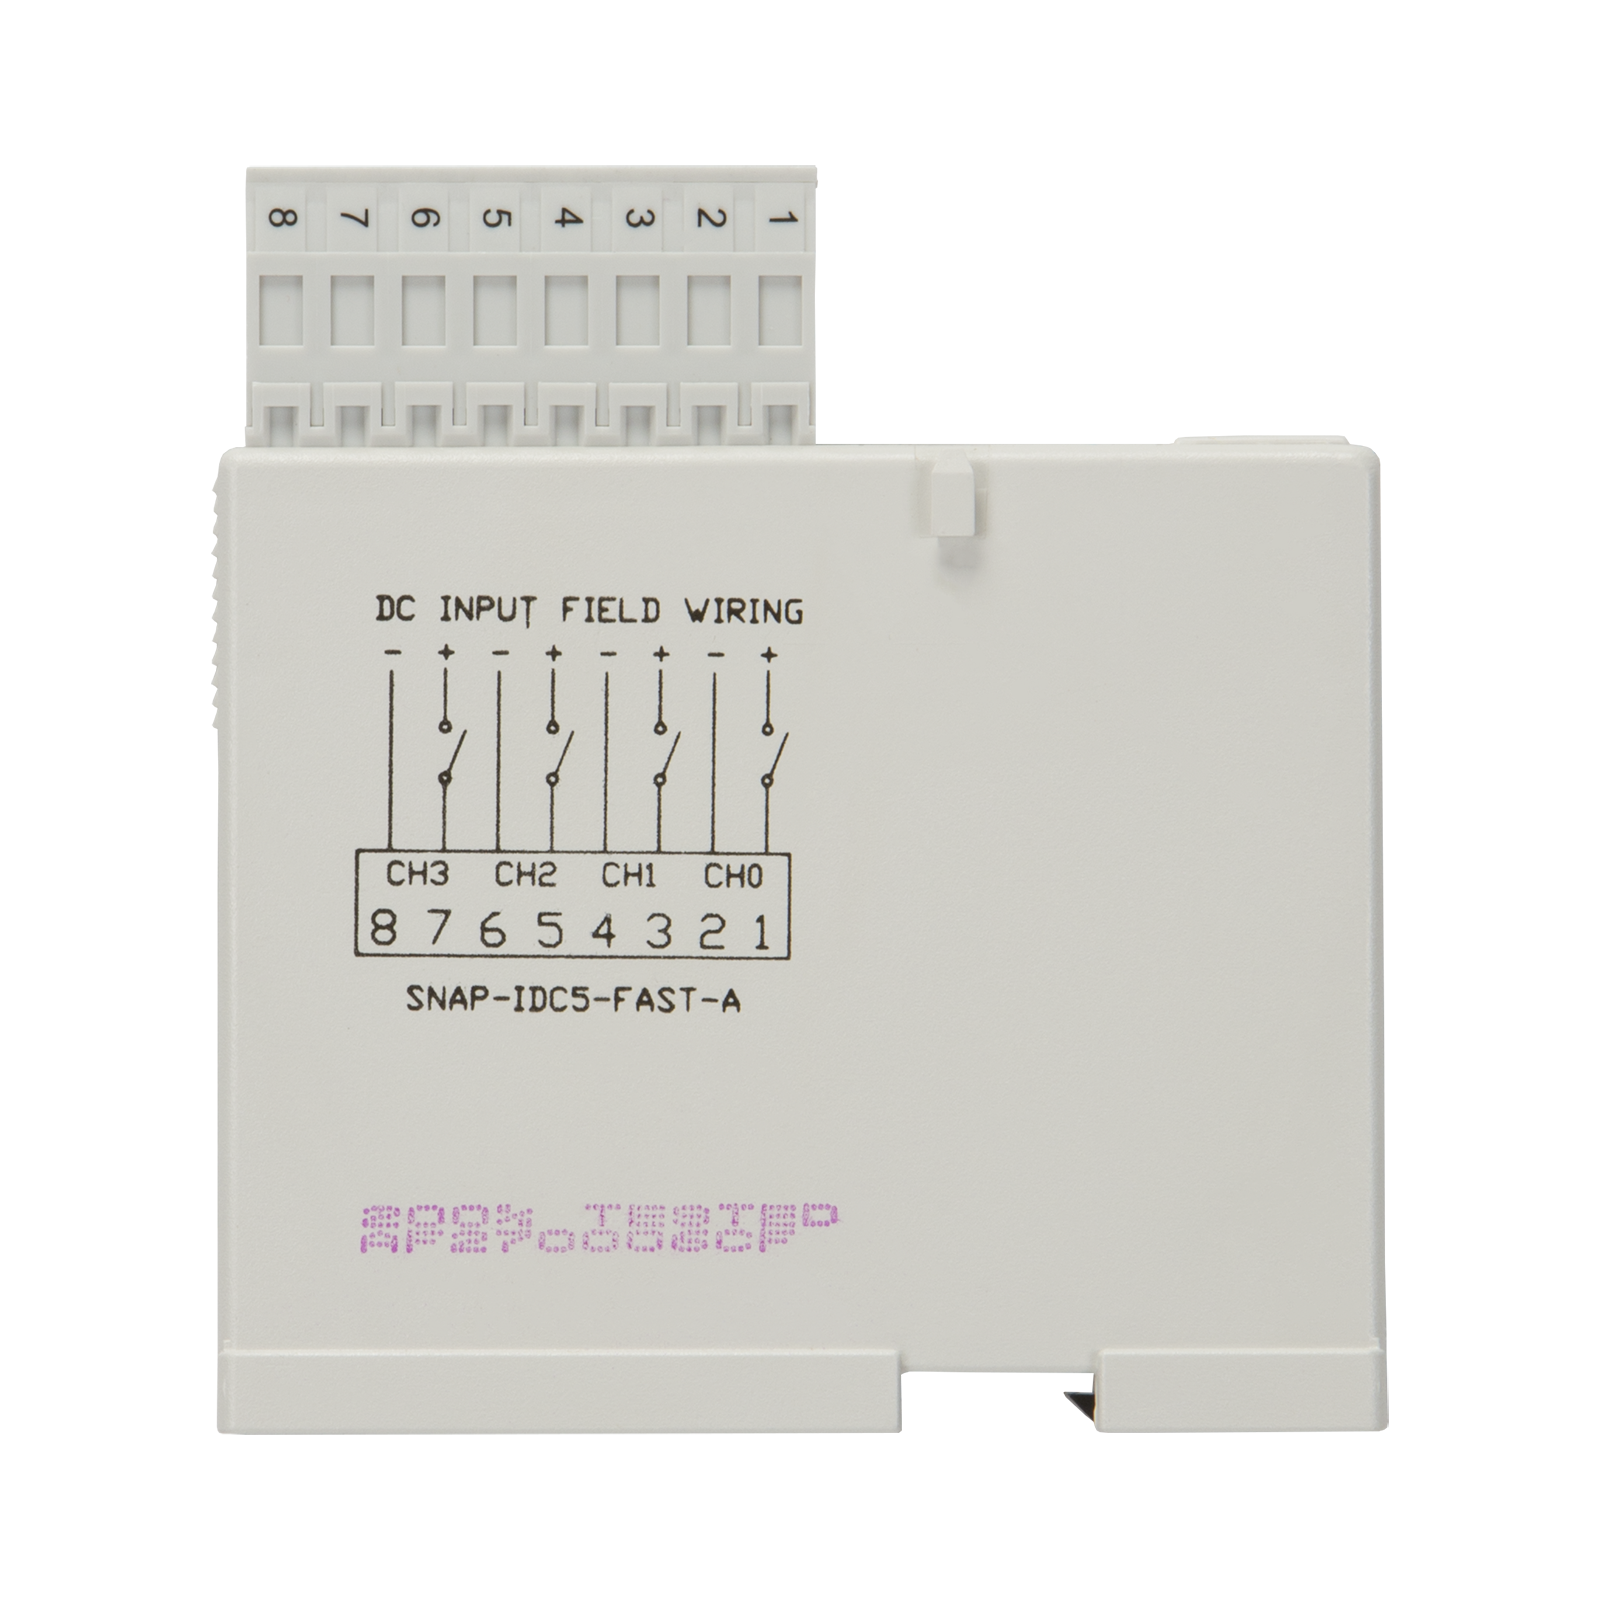 Opto 22 Wiring Diagram Great Design Of Fast Opto22 Snap Idc5 A 4 Ch High Speed 18 32 Vdc Digital Rh Com Lighted Rocker Switch Relay